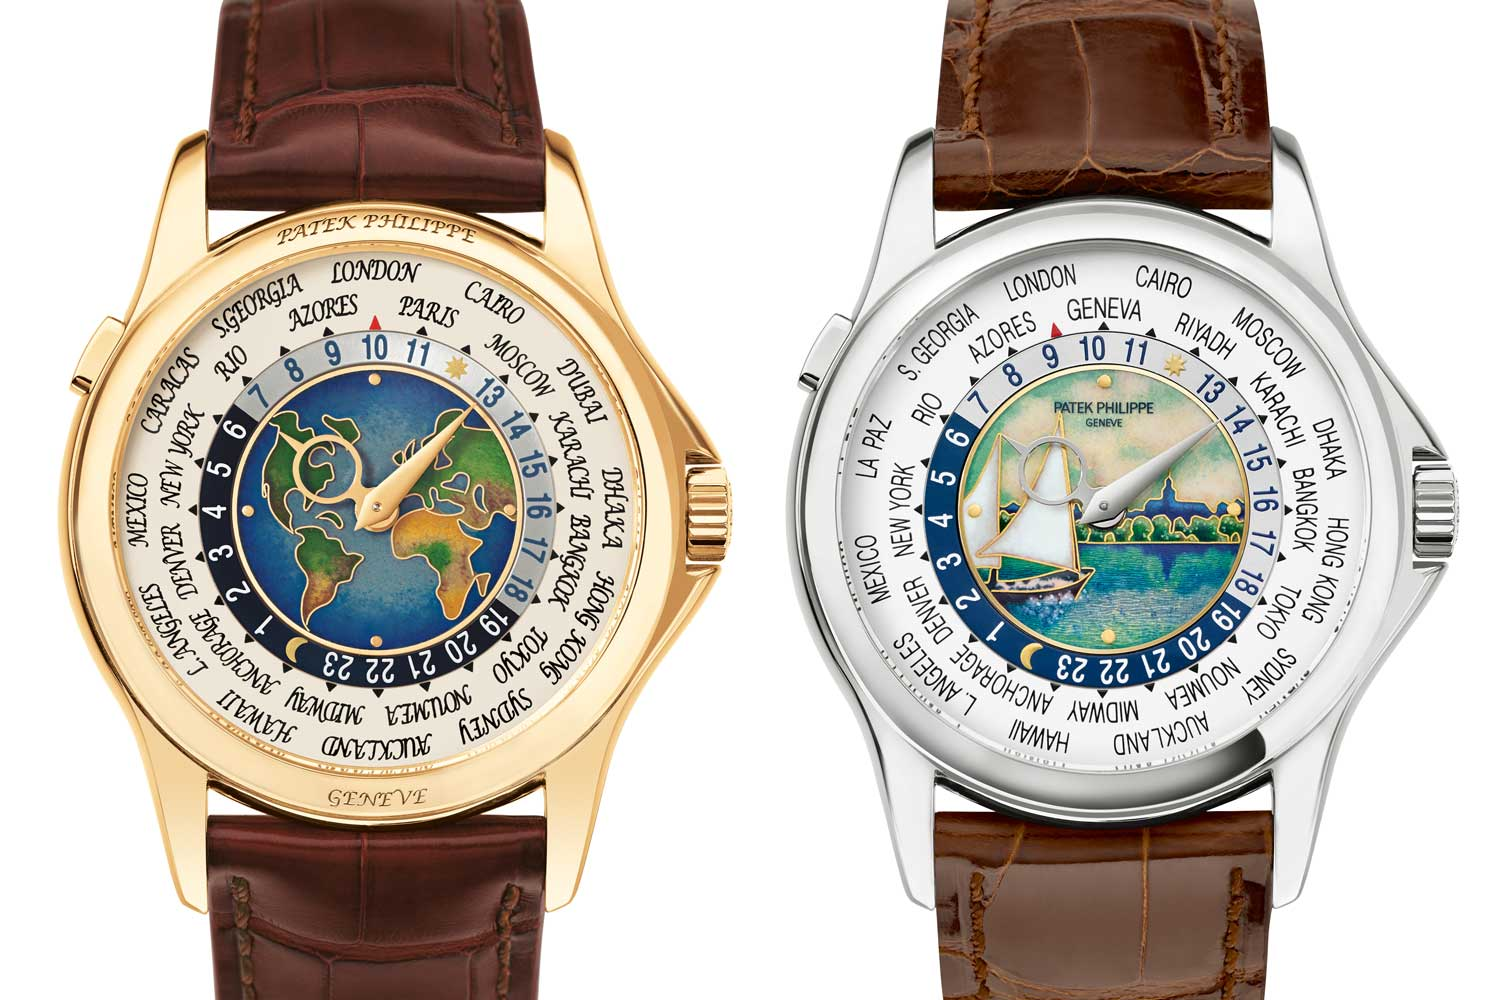 The 5131 was initially introduced in two stunning versions, a yellow gold watch with a map of North and South America, Europe and Africa, and a white gold version with a map of Africa, Europe, Asia and Australia. (Images: Patek Philippe)